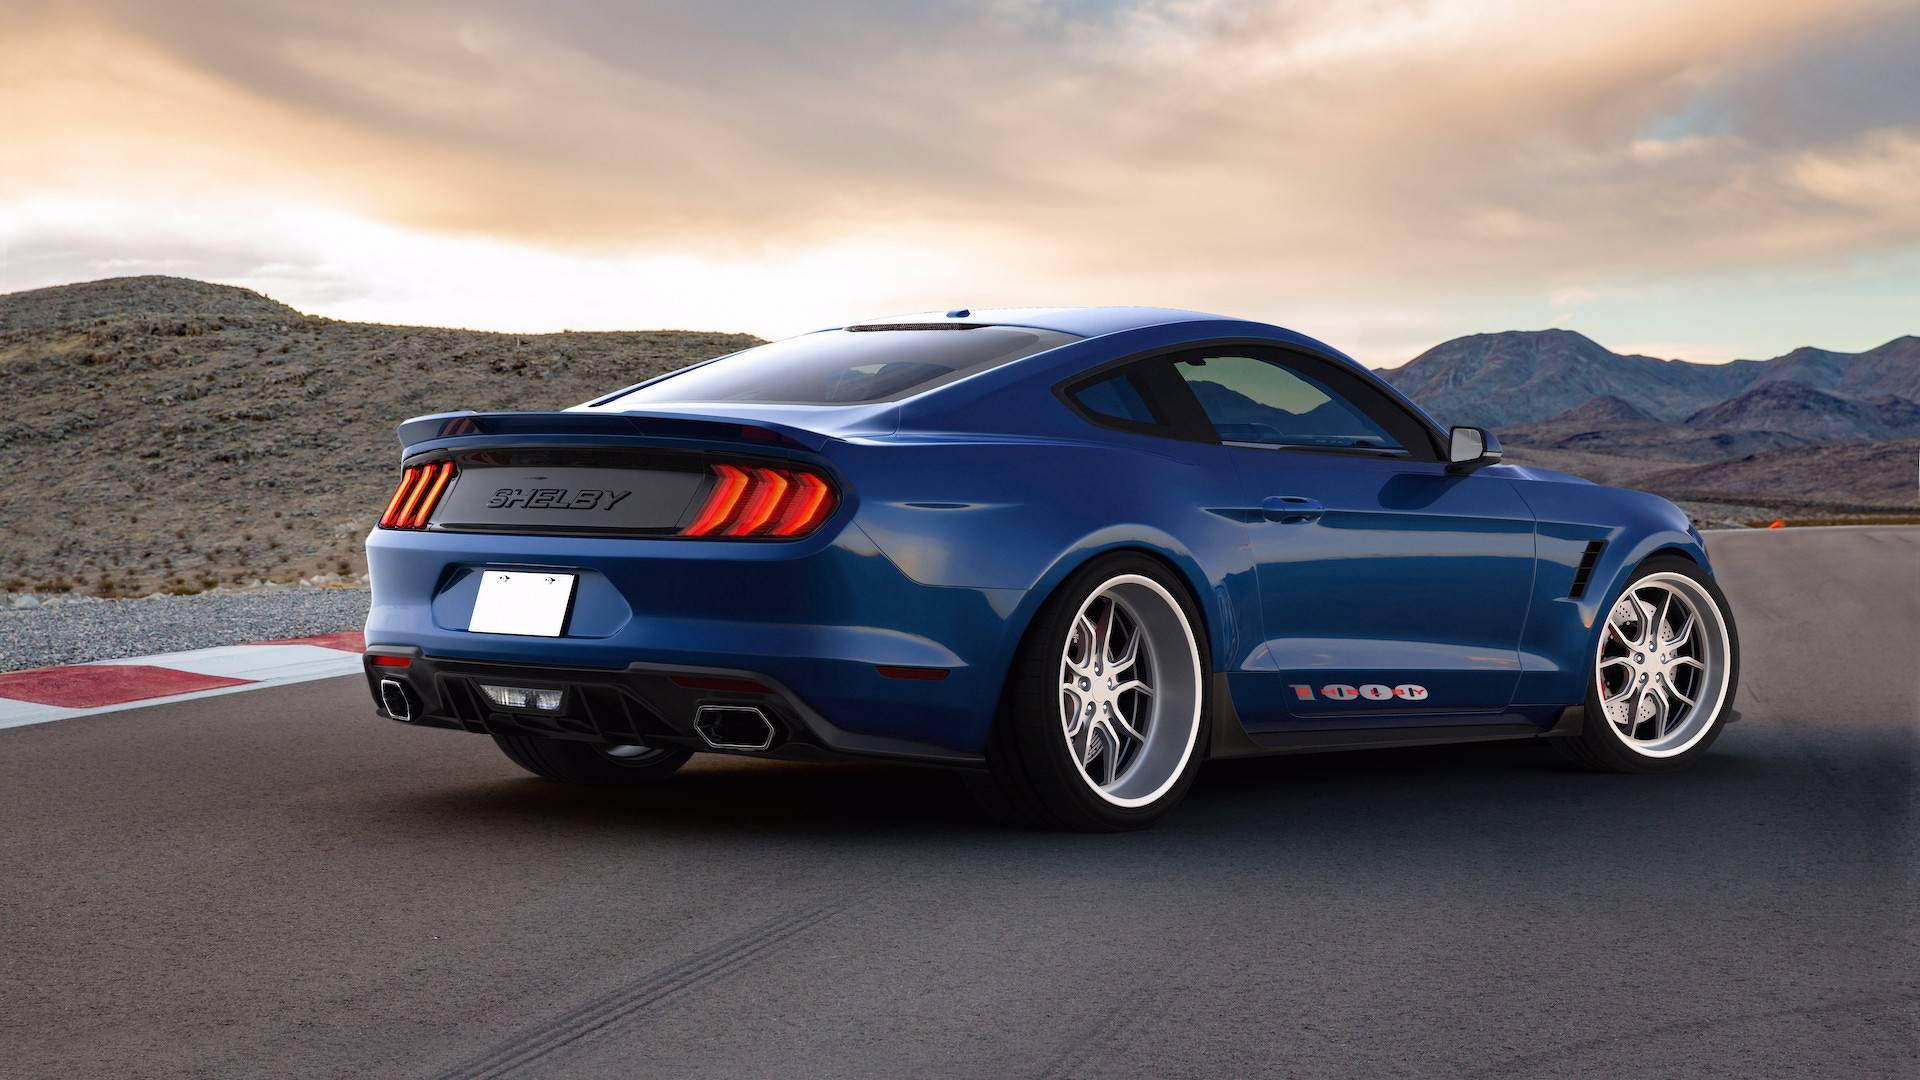 Shelby 1000 is a track only mustang loaded with 1000 hp